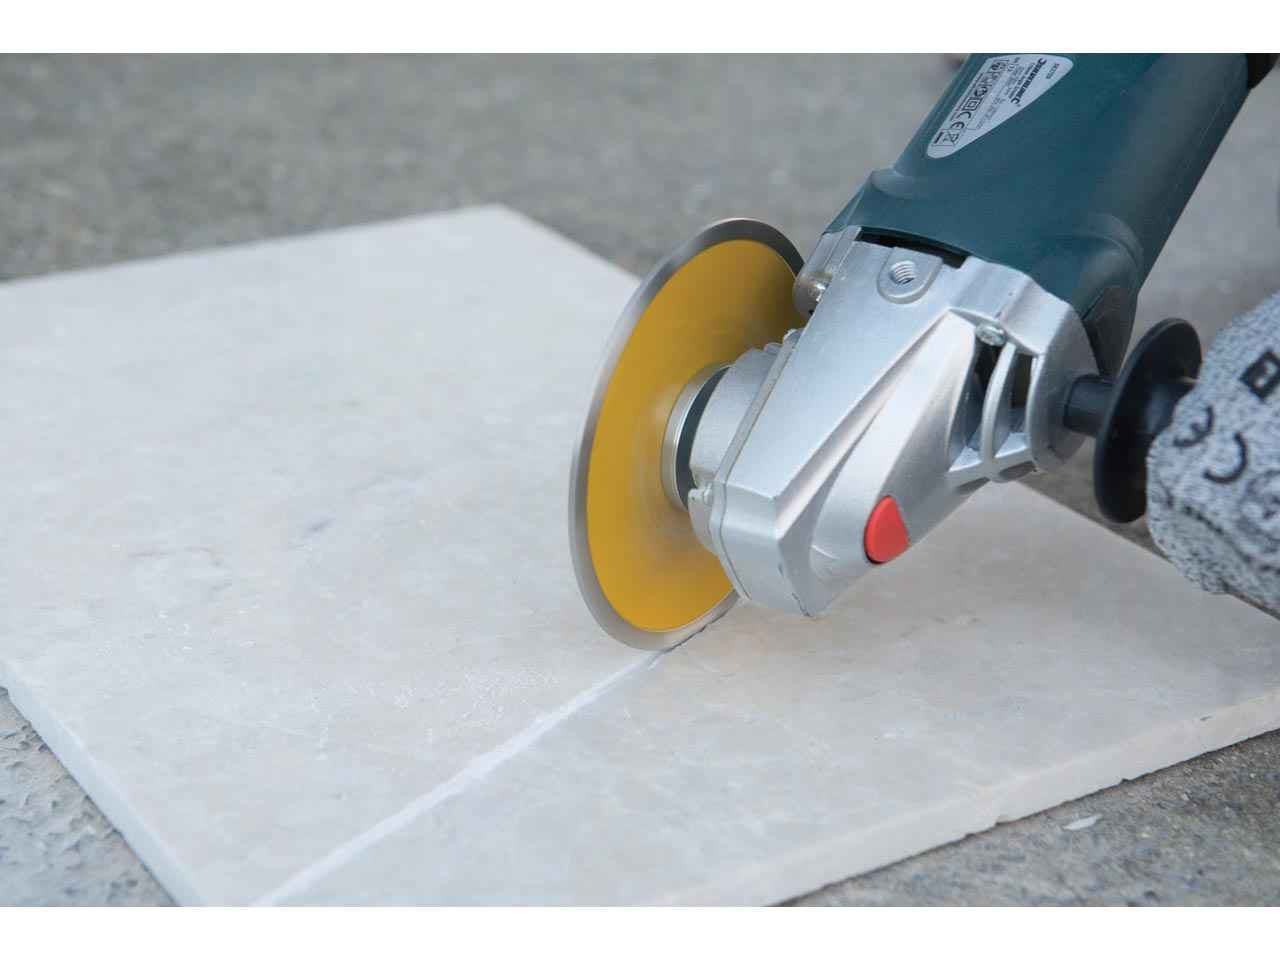 Silverline 918528 tile cutting diamond blade 200 x 254mm authorised reseller dailygadgetfo Images